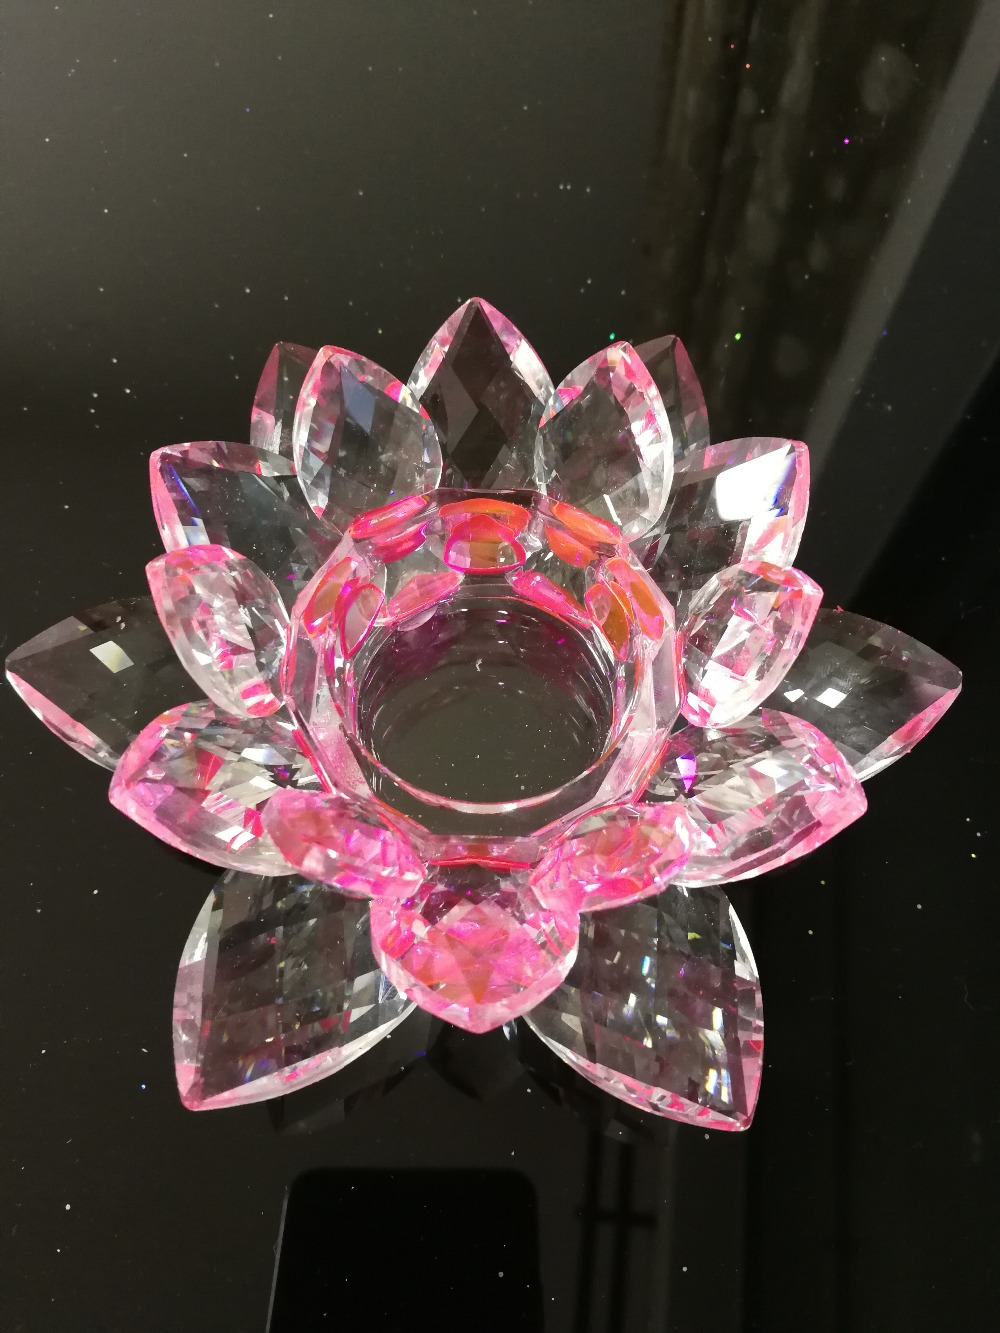 Pink Crystal Glass Lotus Flower Candle Holder Candlestick Candelabra